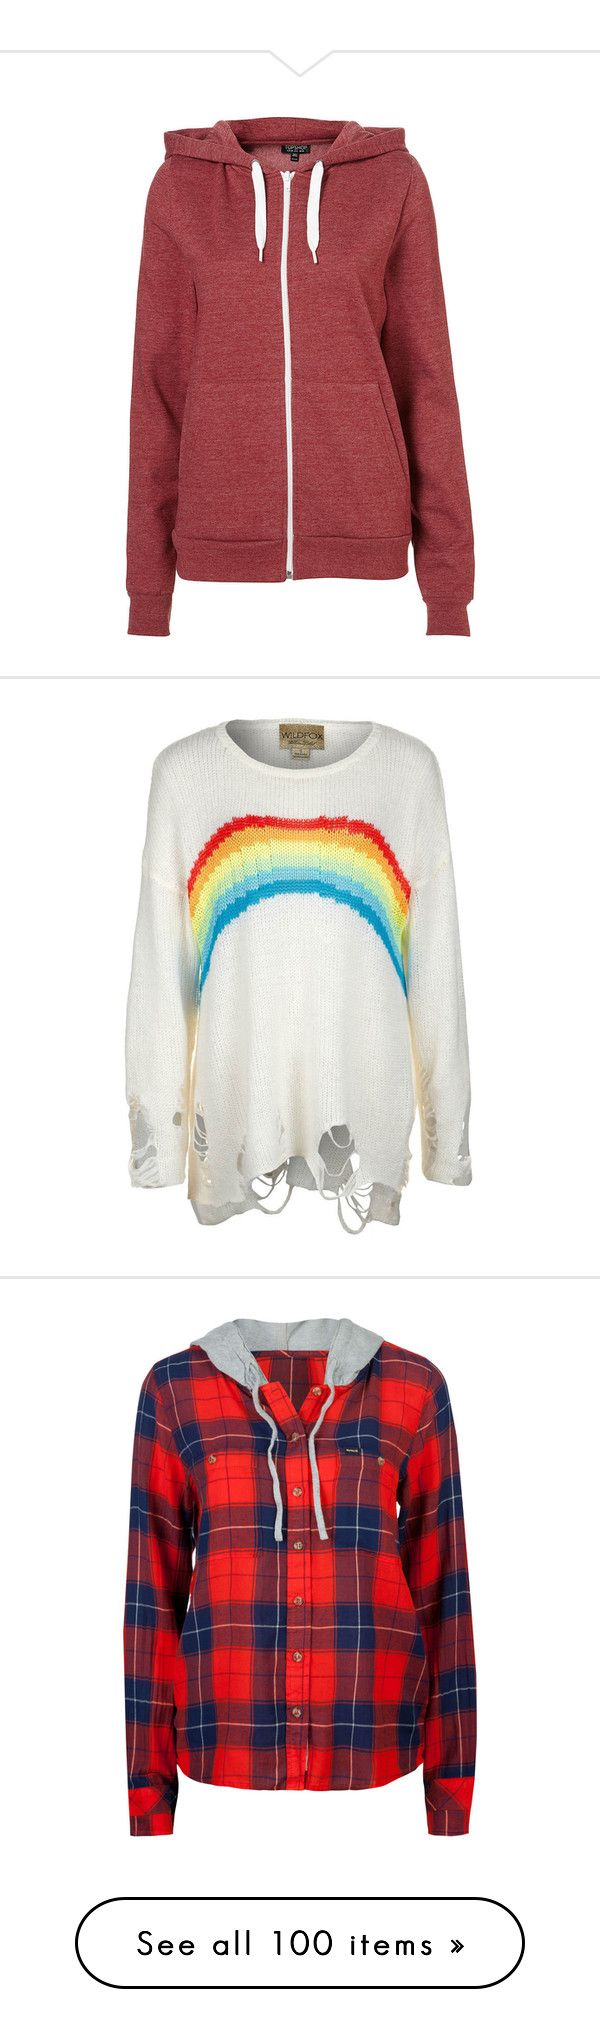 """""""Tay-ay-ay-ake my jumper and wear it, you'll need it on the train home then everyone will know that I've been loved tonight a permanent hug from you"""" by rainboweatingbutterflies ❤ liked on Polyvore"""